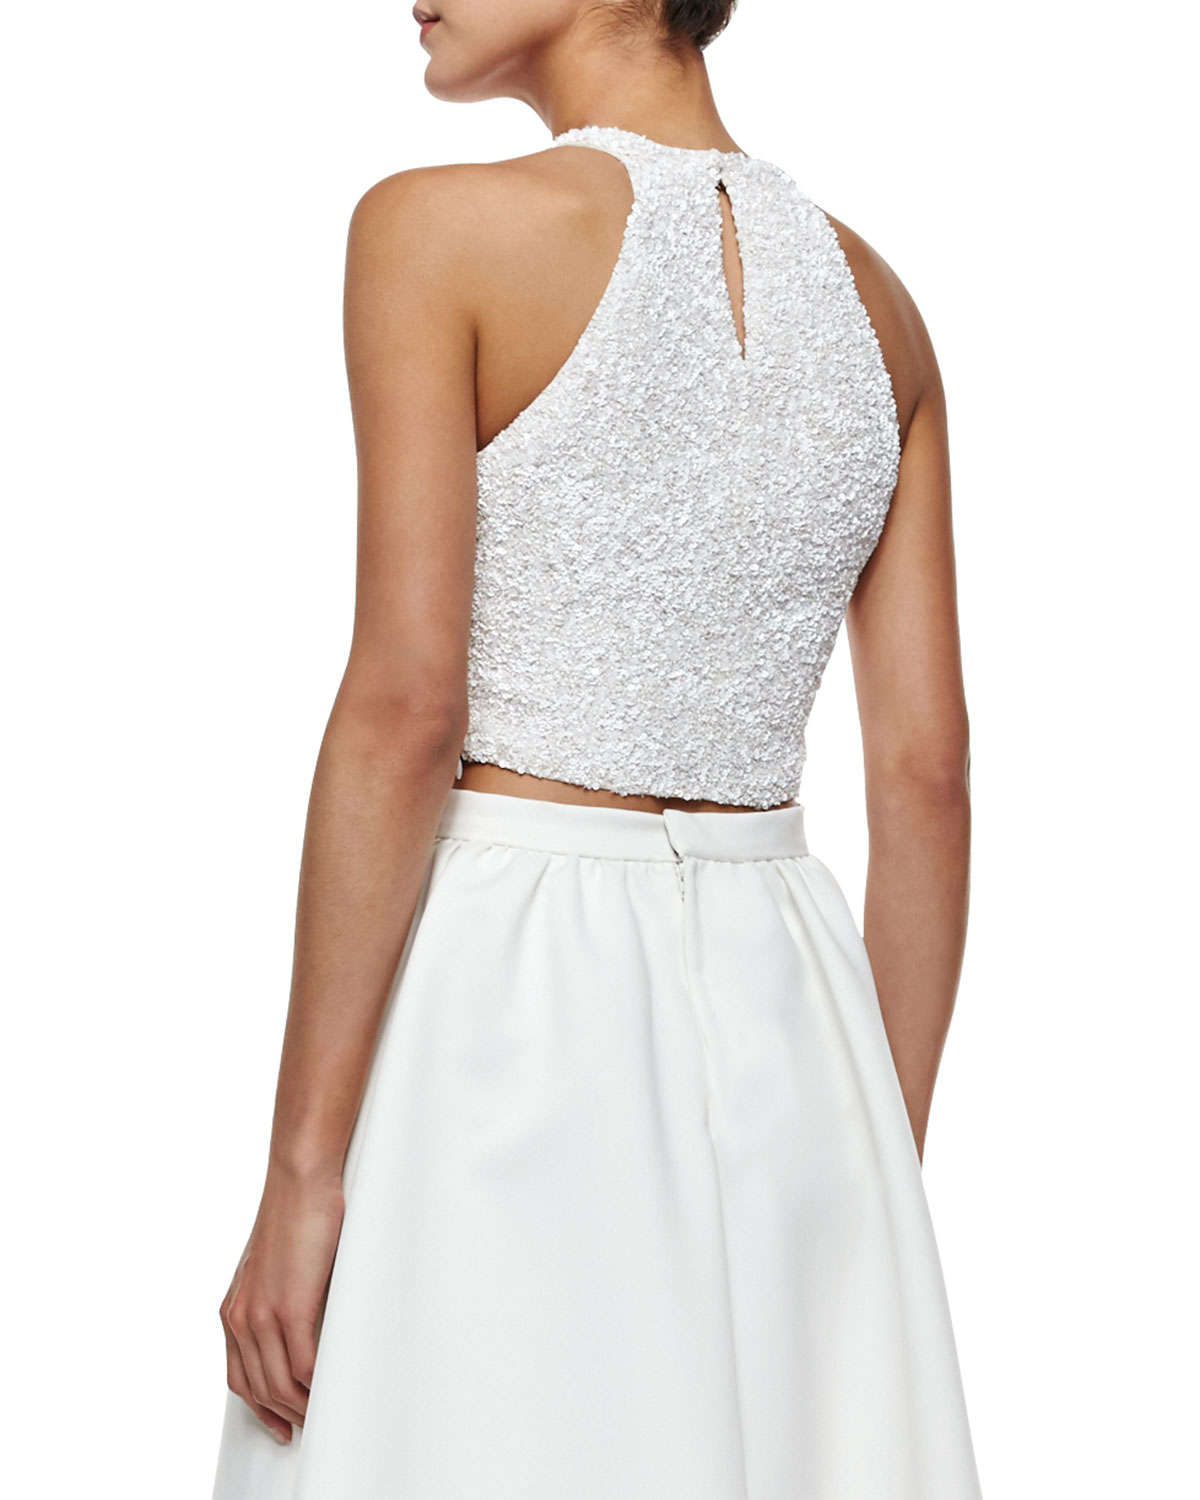 6a15e90876cc0 Lyst - Parker Black Grenada Sleeveless Beaded Crop Top in White